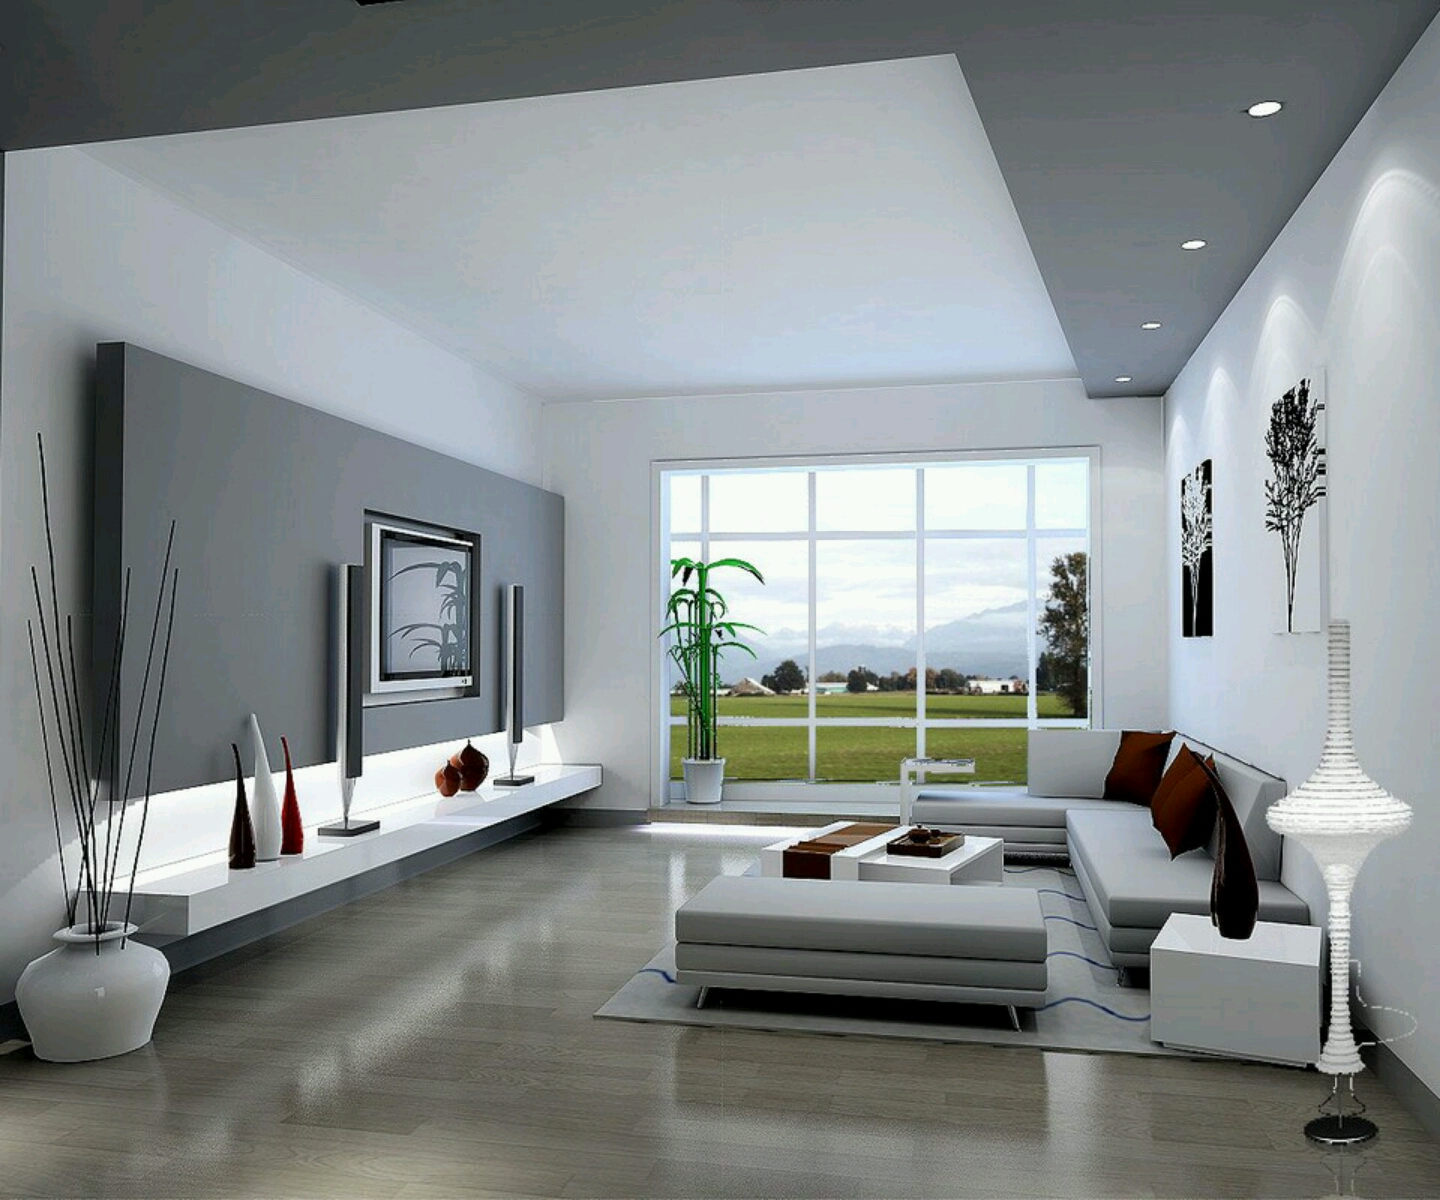 New home designs latest modern living rooms interior for Living room remodel ideas